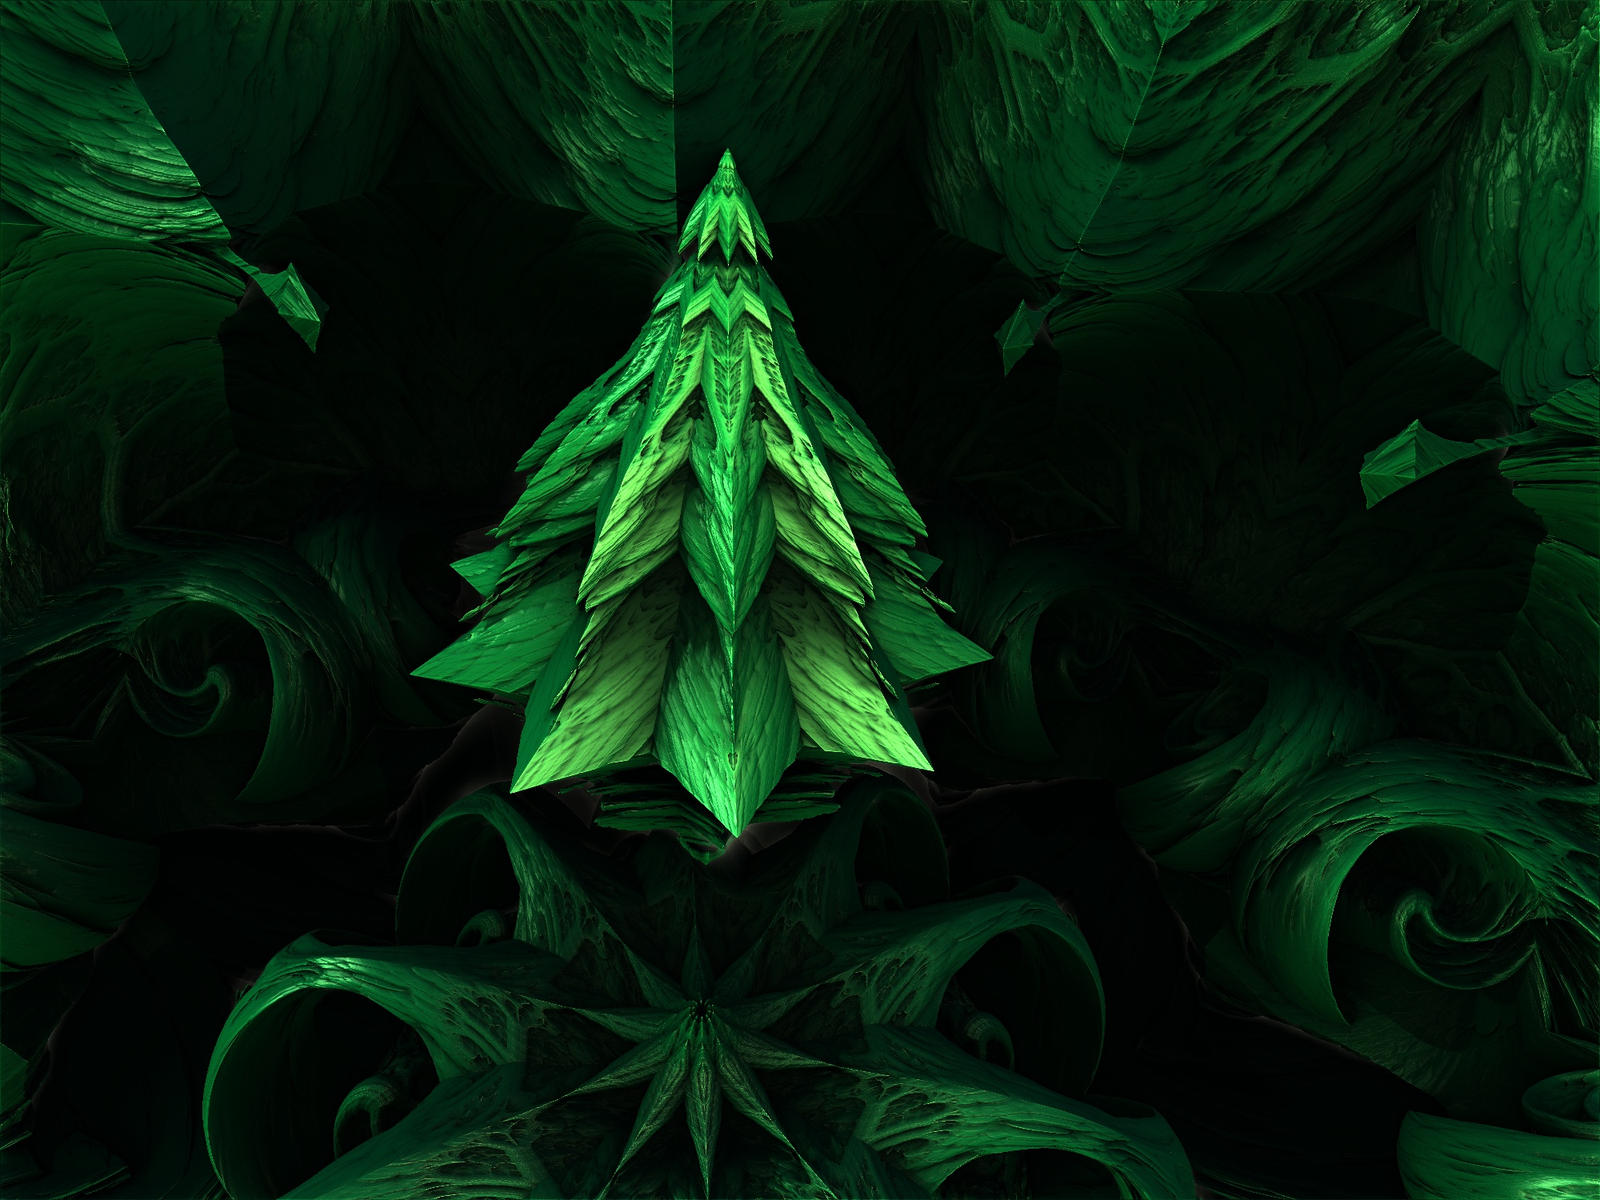 rebirth of a christmas tree by jost1